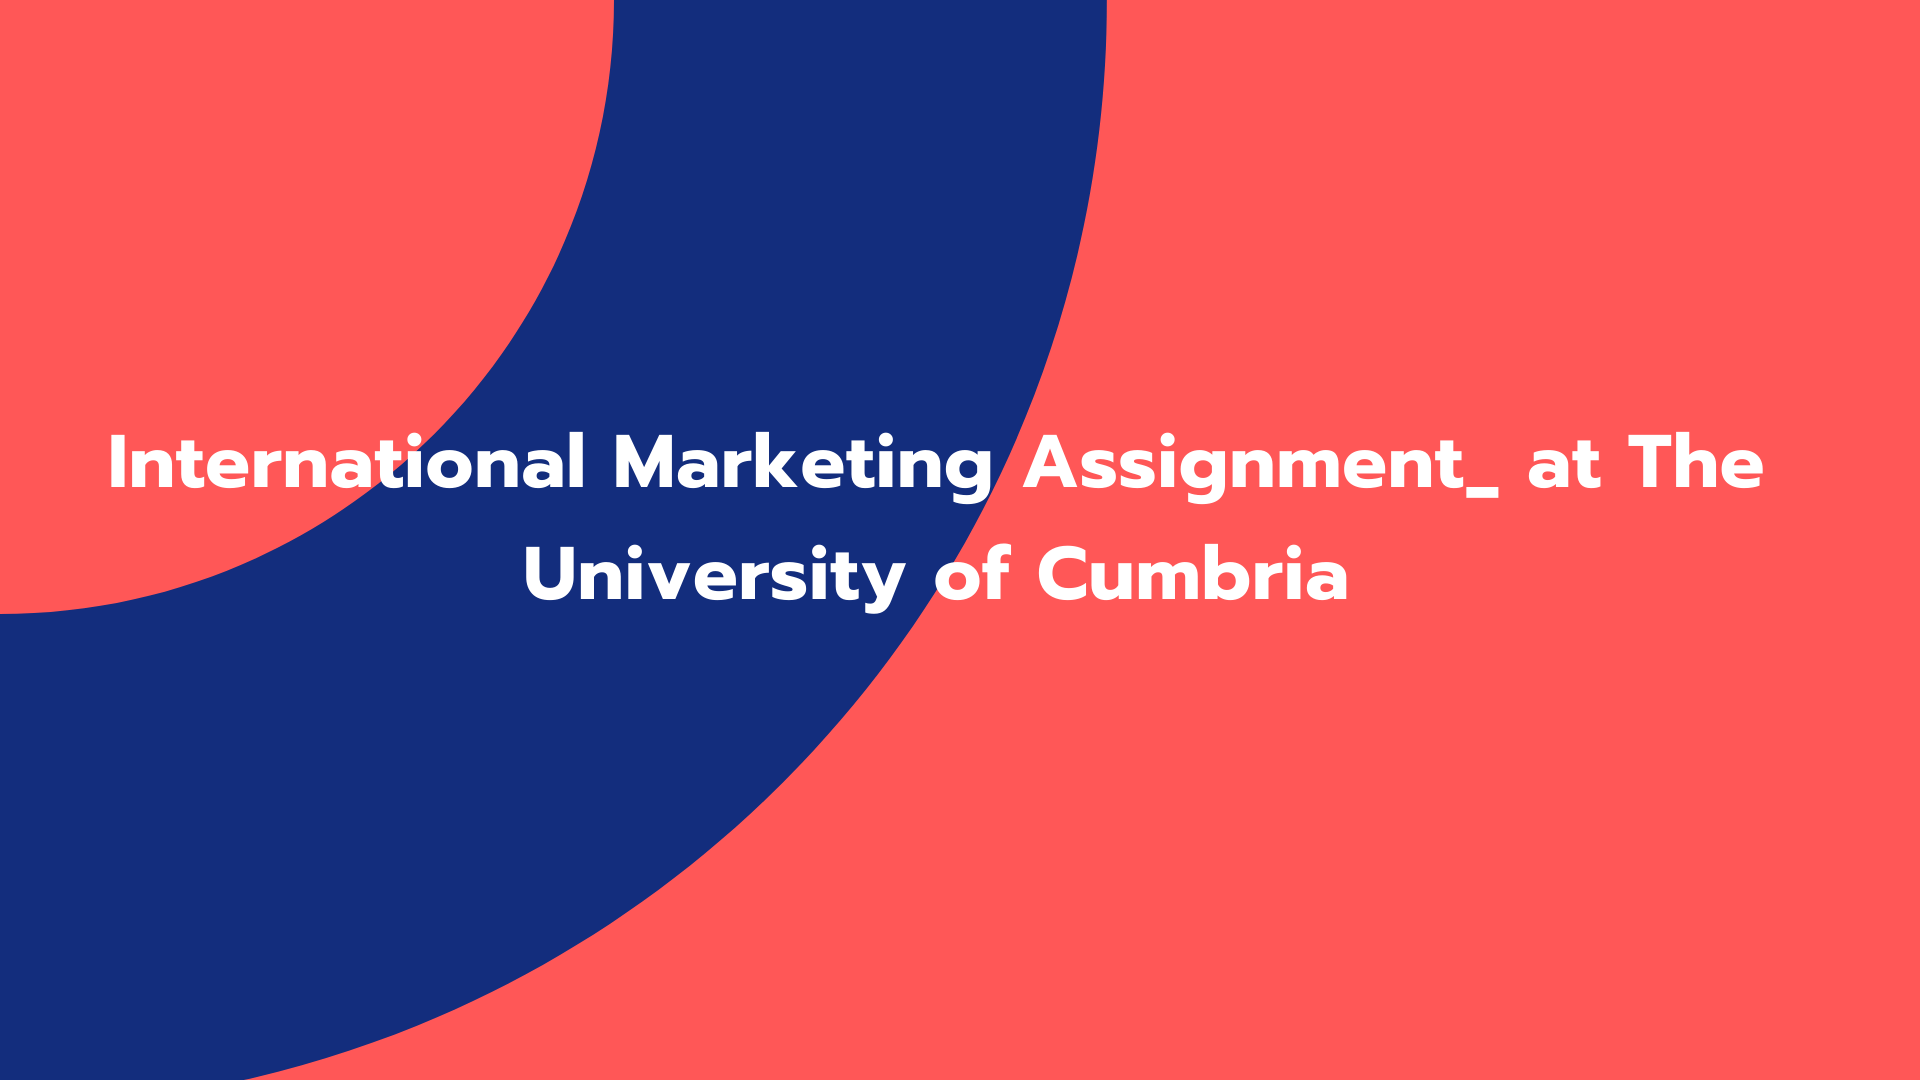 International Marketing Assignment at The University of Cumbria